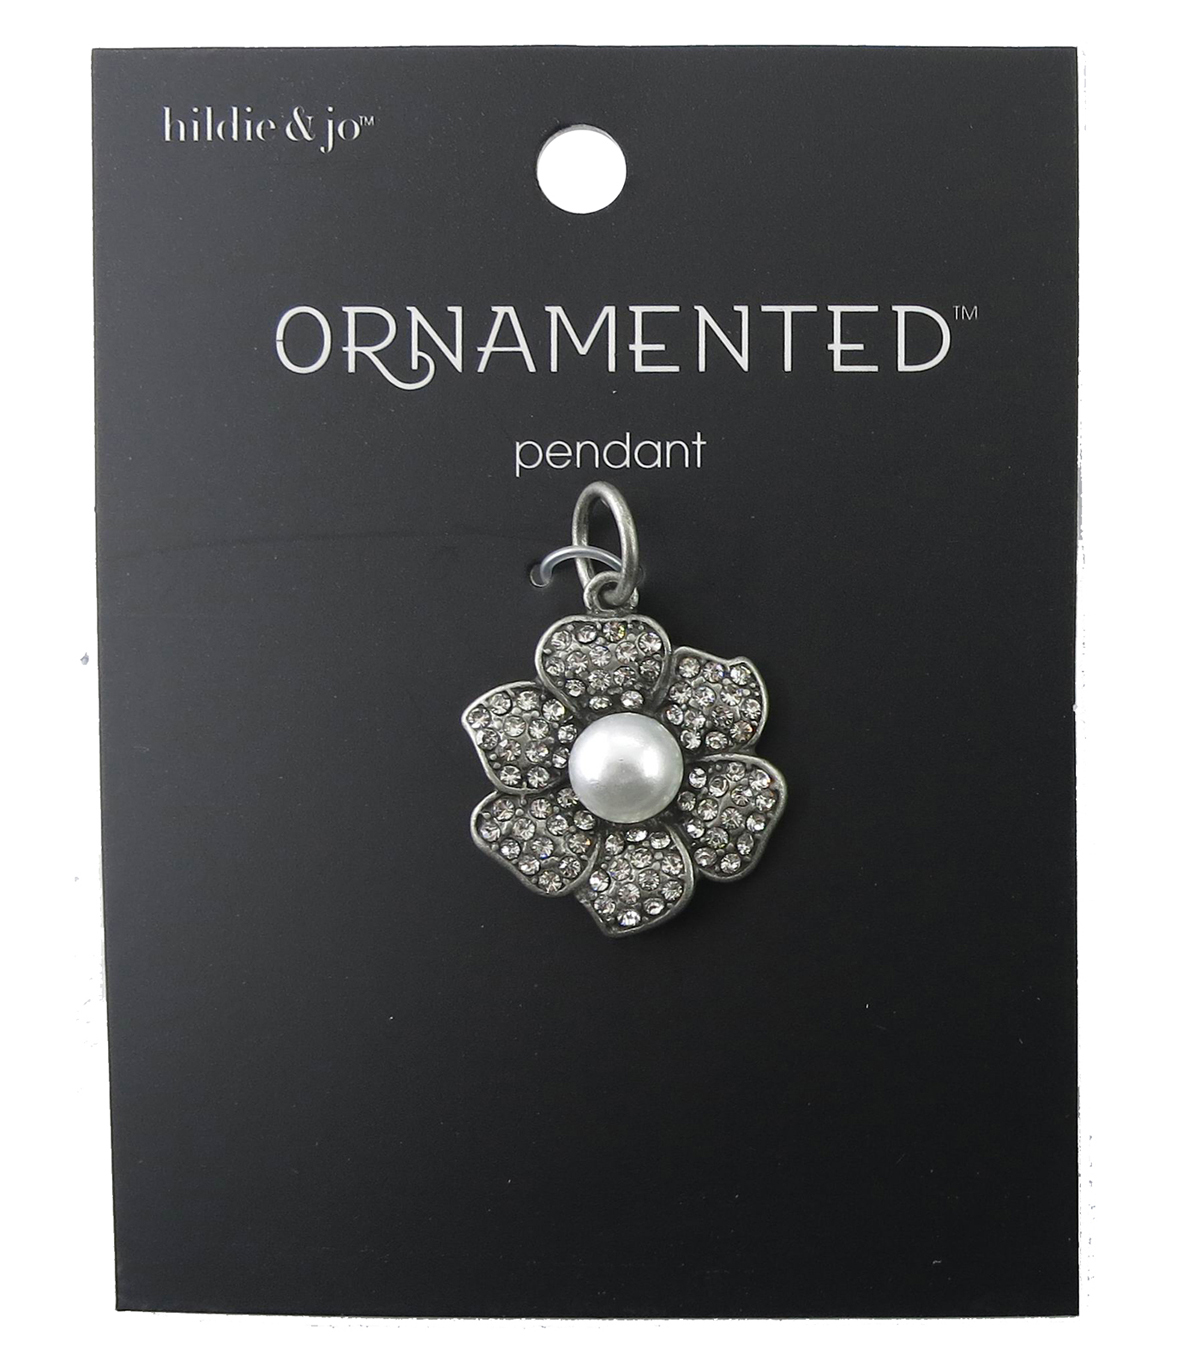 hildie & jo™ Ornamented Flower Petals Antique Silver Pendant